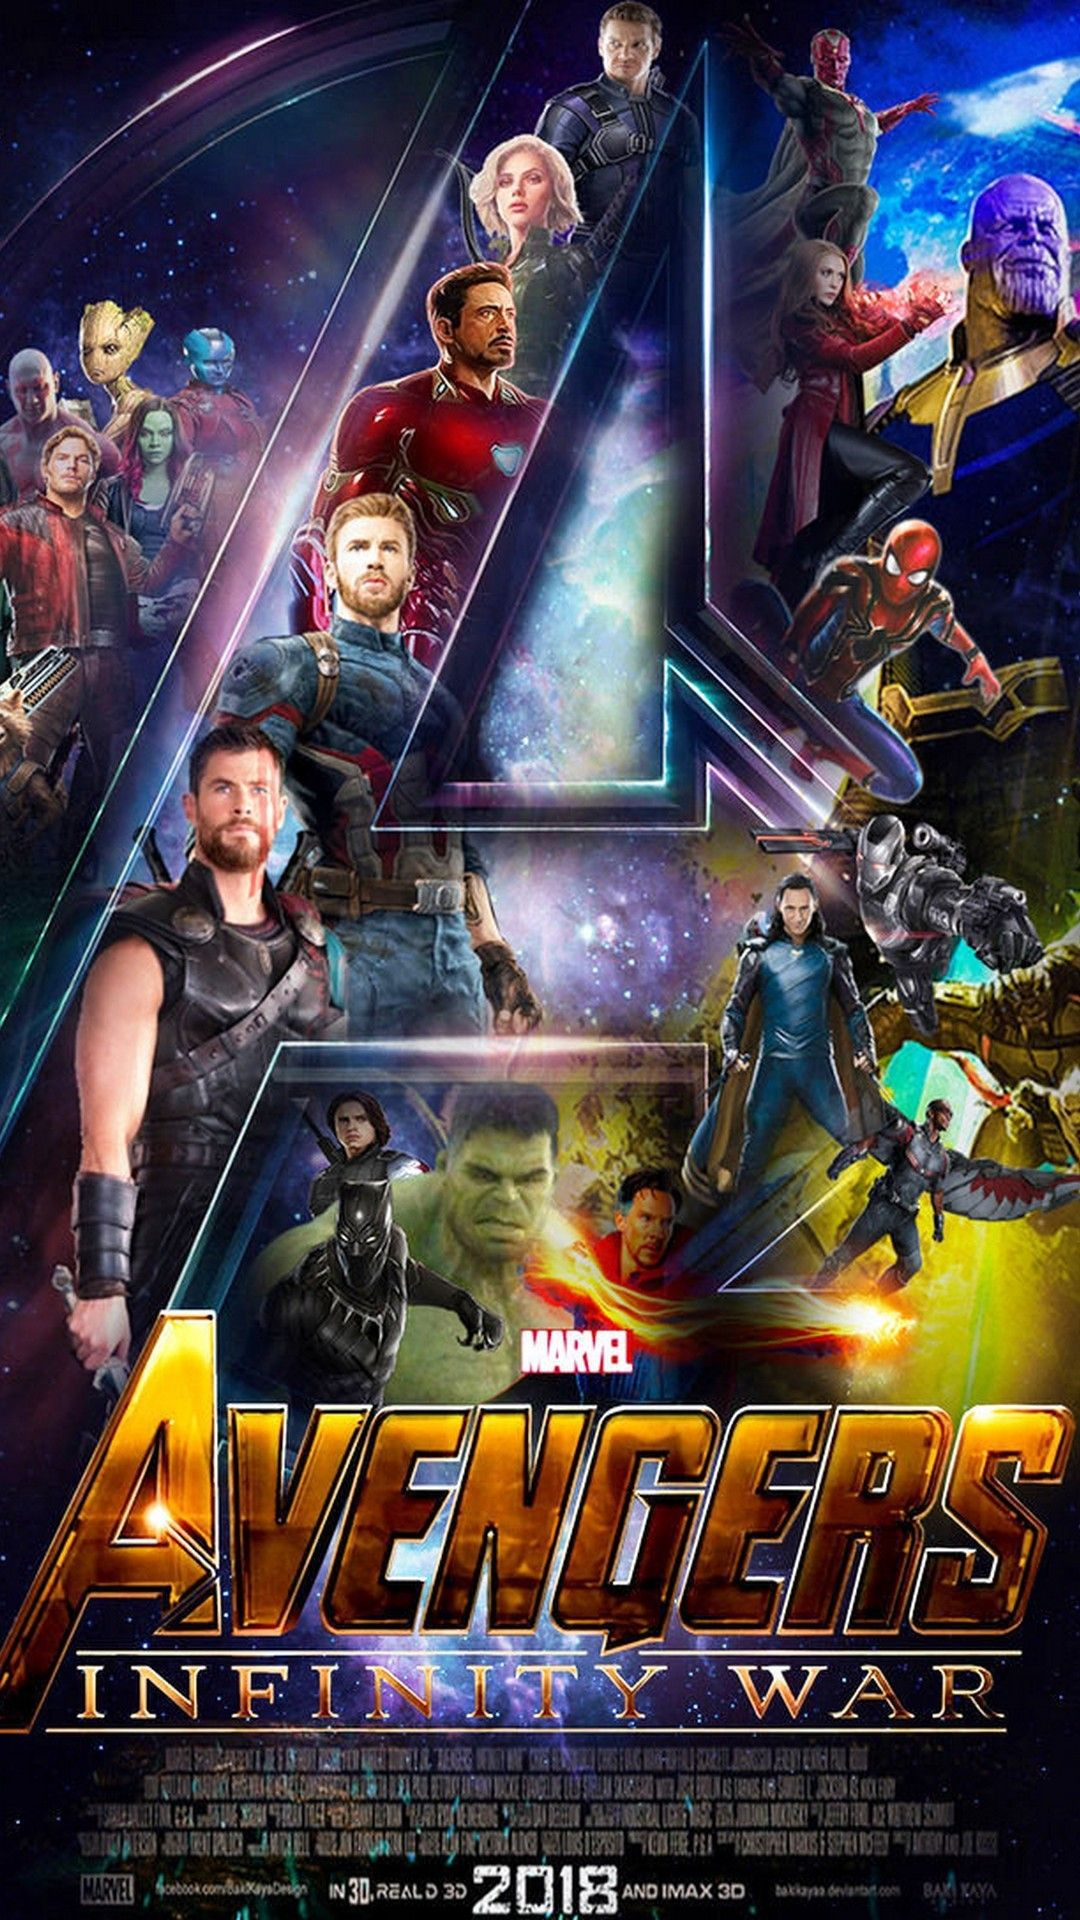 Avengers infinity war wallpaper for android best android - Fondos de pantalla 3d avengers ...